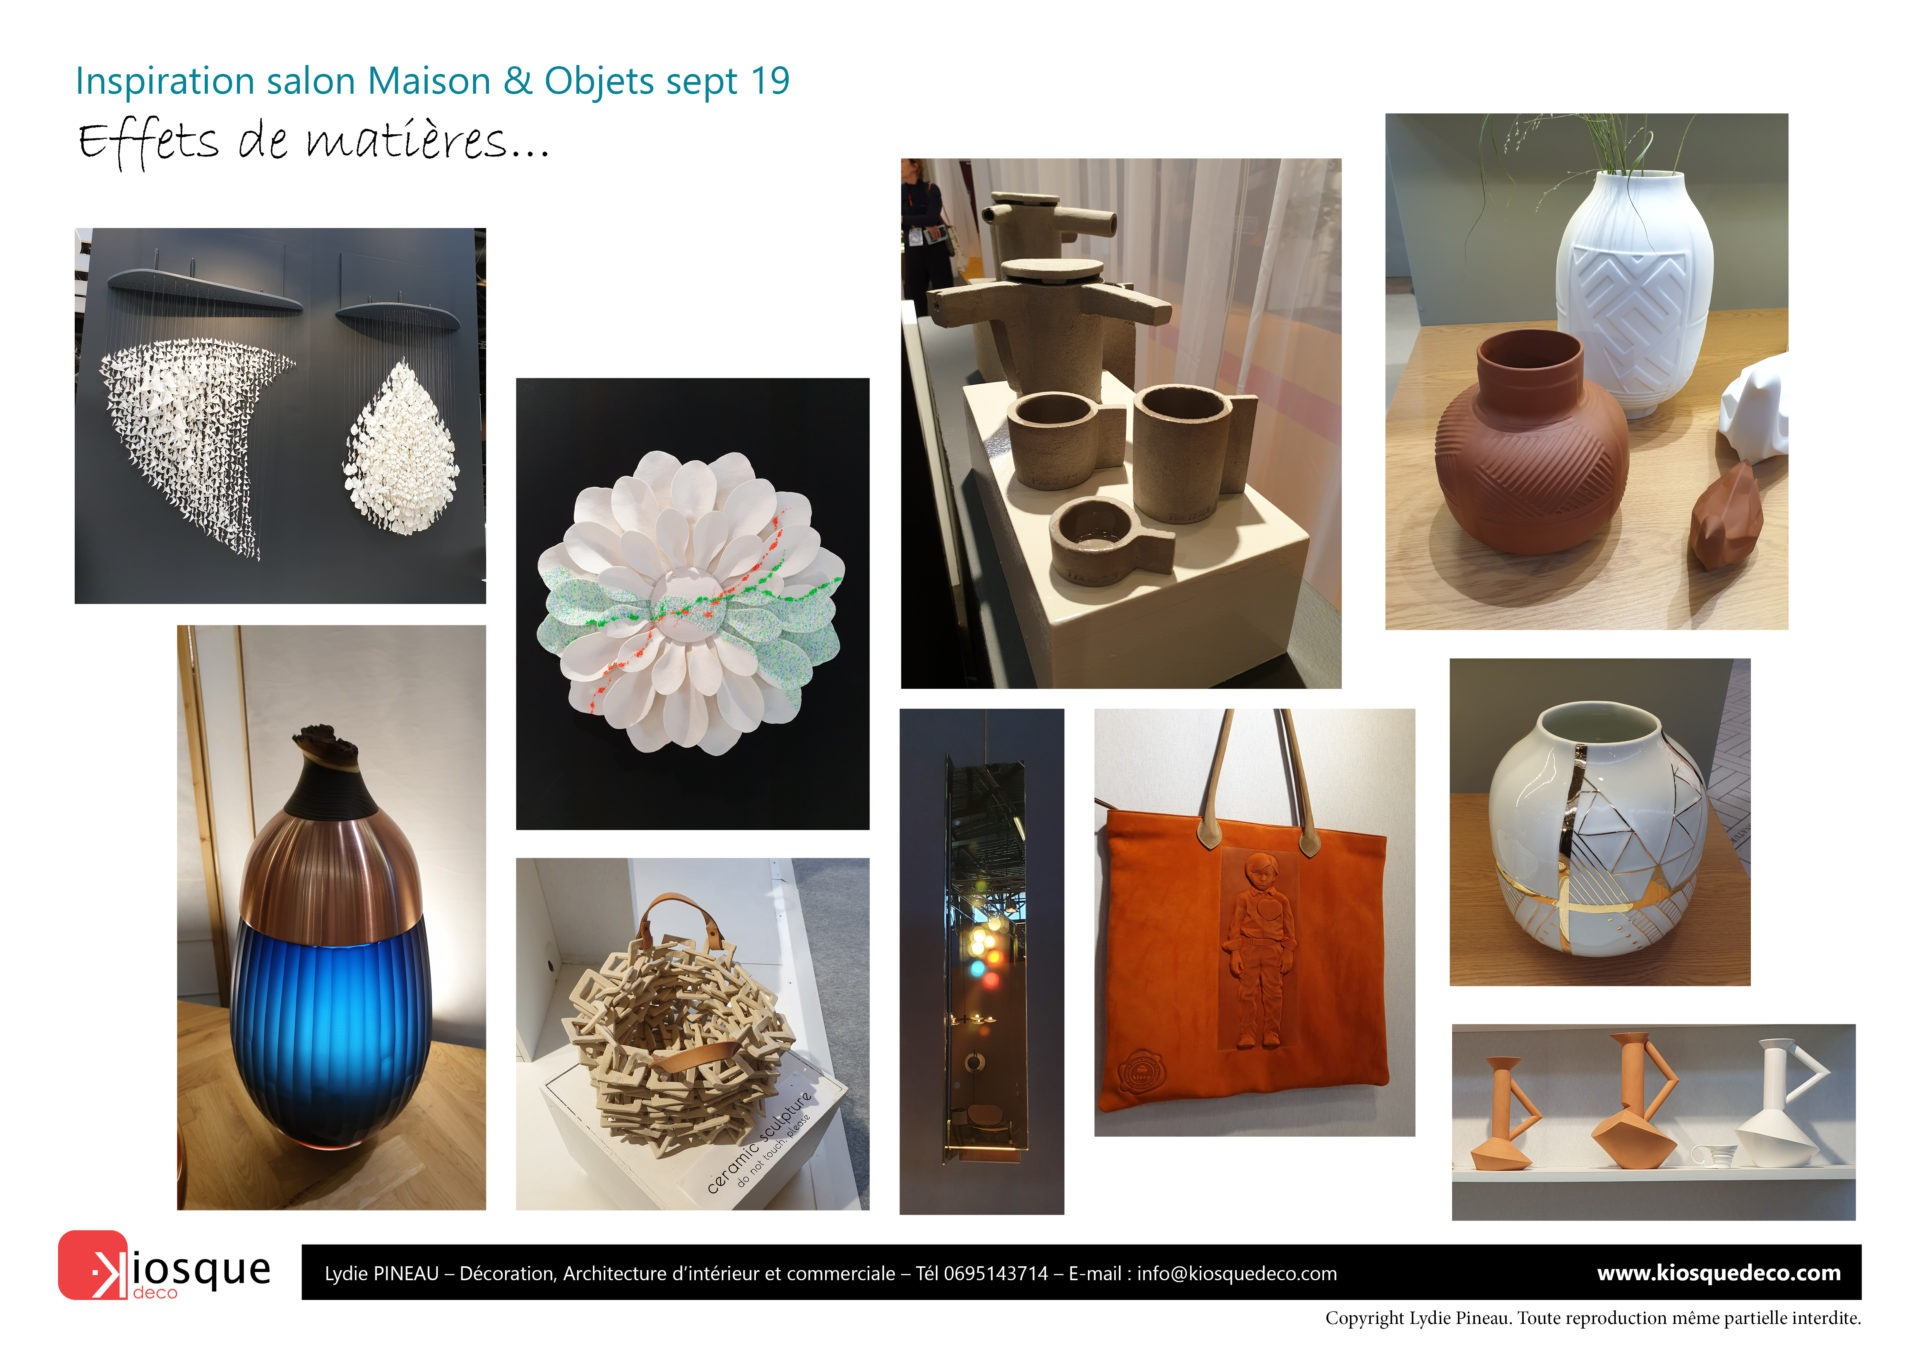 INSPIRATION MAISON OBJETS SEPT19 PAR LYDIE PINEAU KIOSQUE DECO DECORATION ET ARCHITECTE D'INTERIEUR NANTES